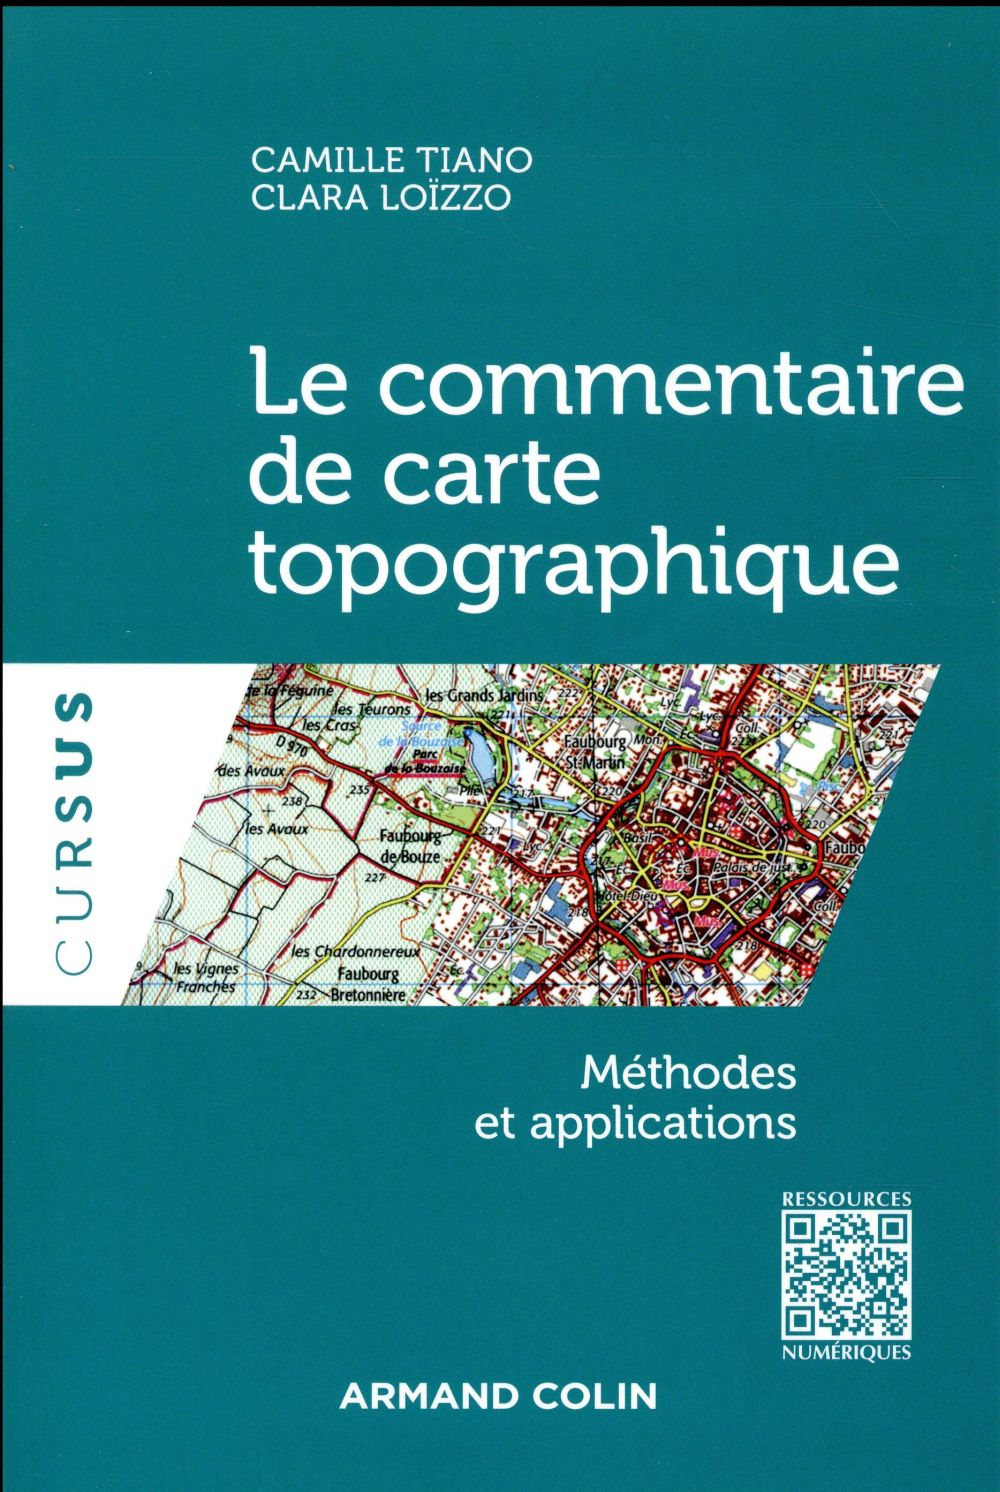 LE COMMENTAIRE DE CARTE TOPOGRAPHIQUE - METHODES ET APPLICATIONS